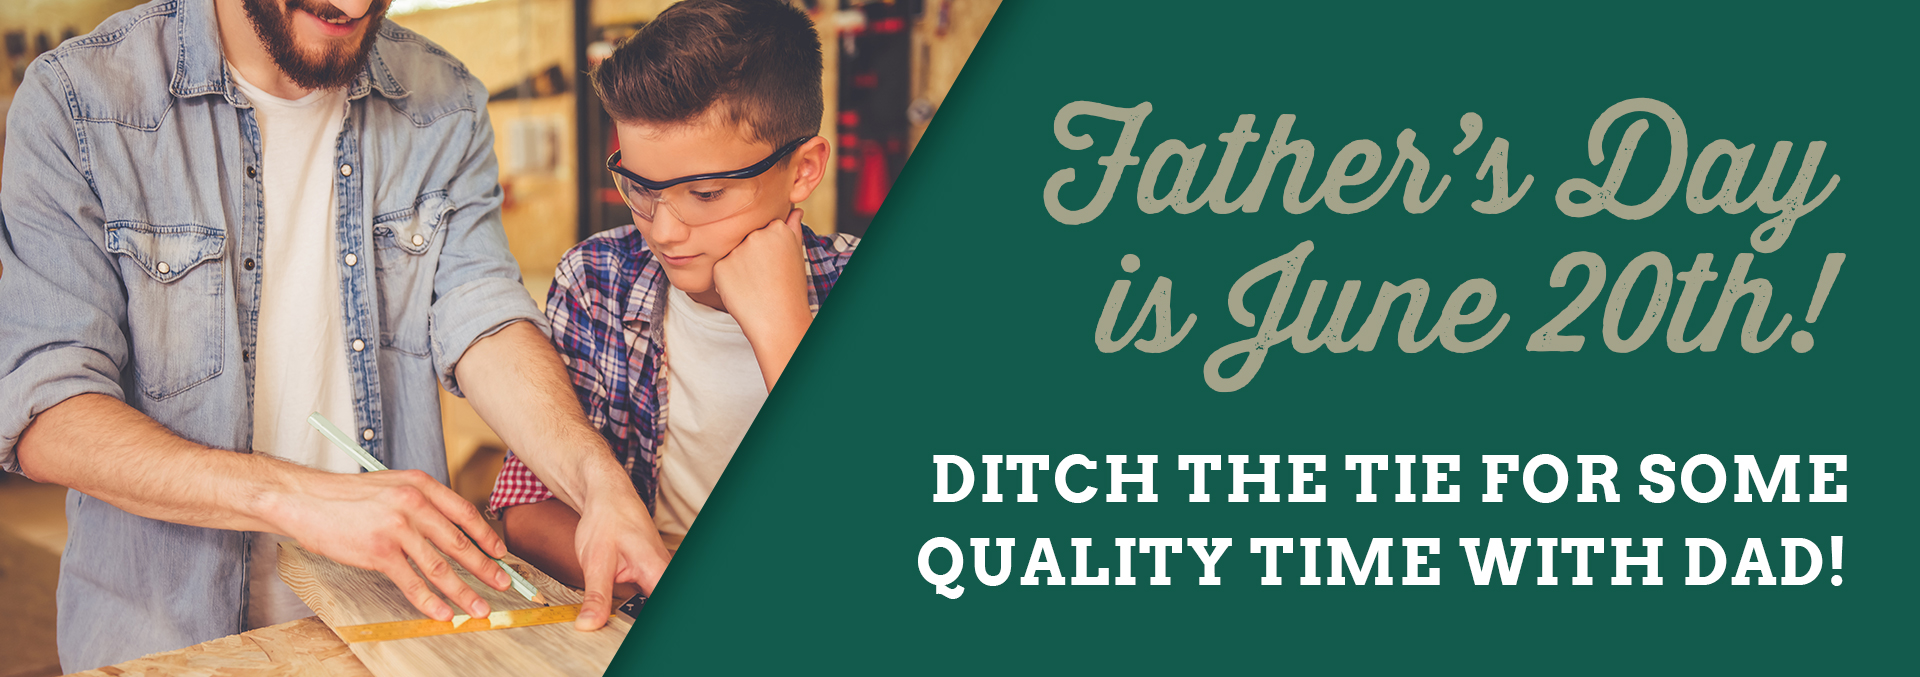 LDBS_Fathers-Day_Web-Banner